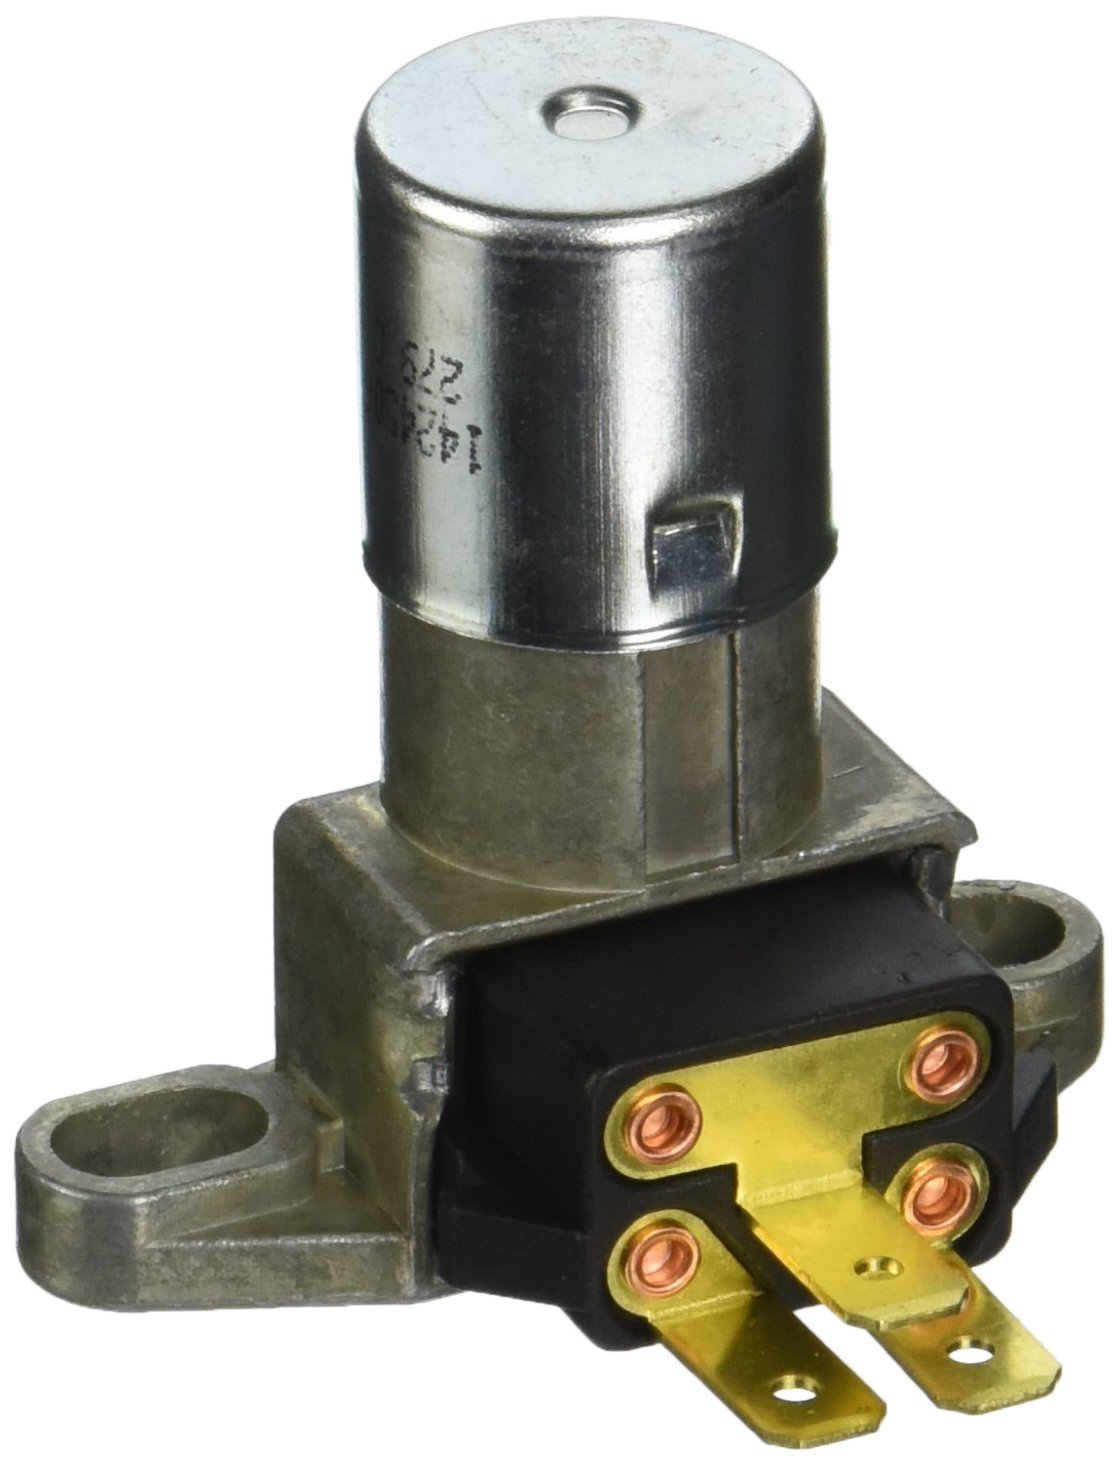 Amazon.com: Painless 80150 Floor Mount Dimmer Switch: Automotive on